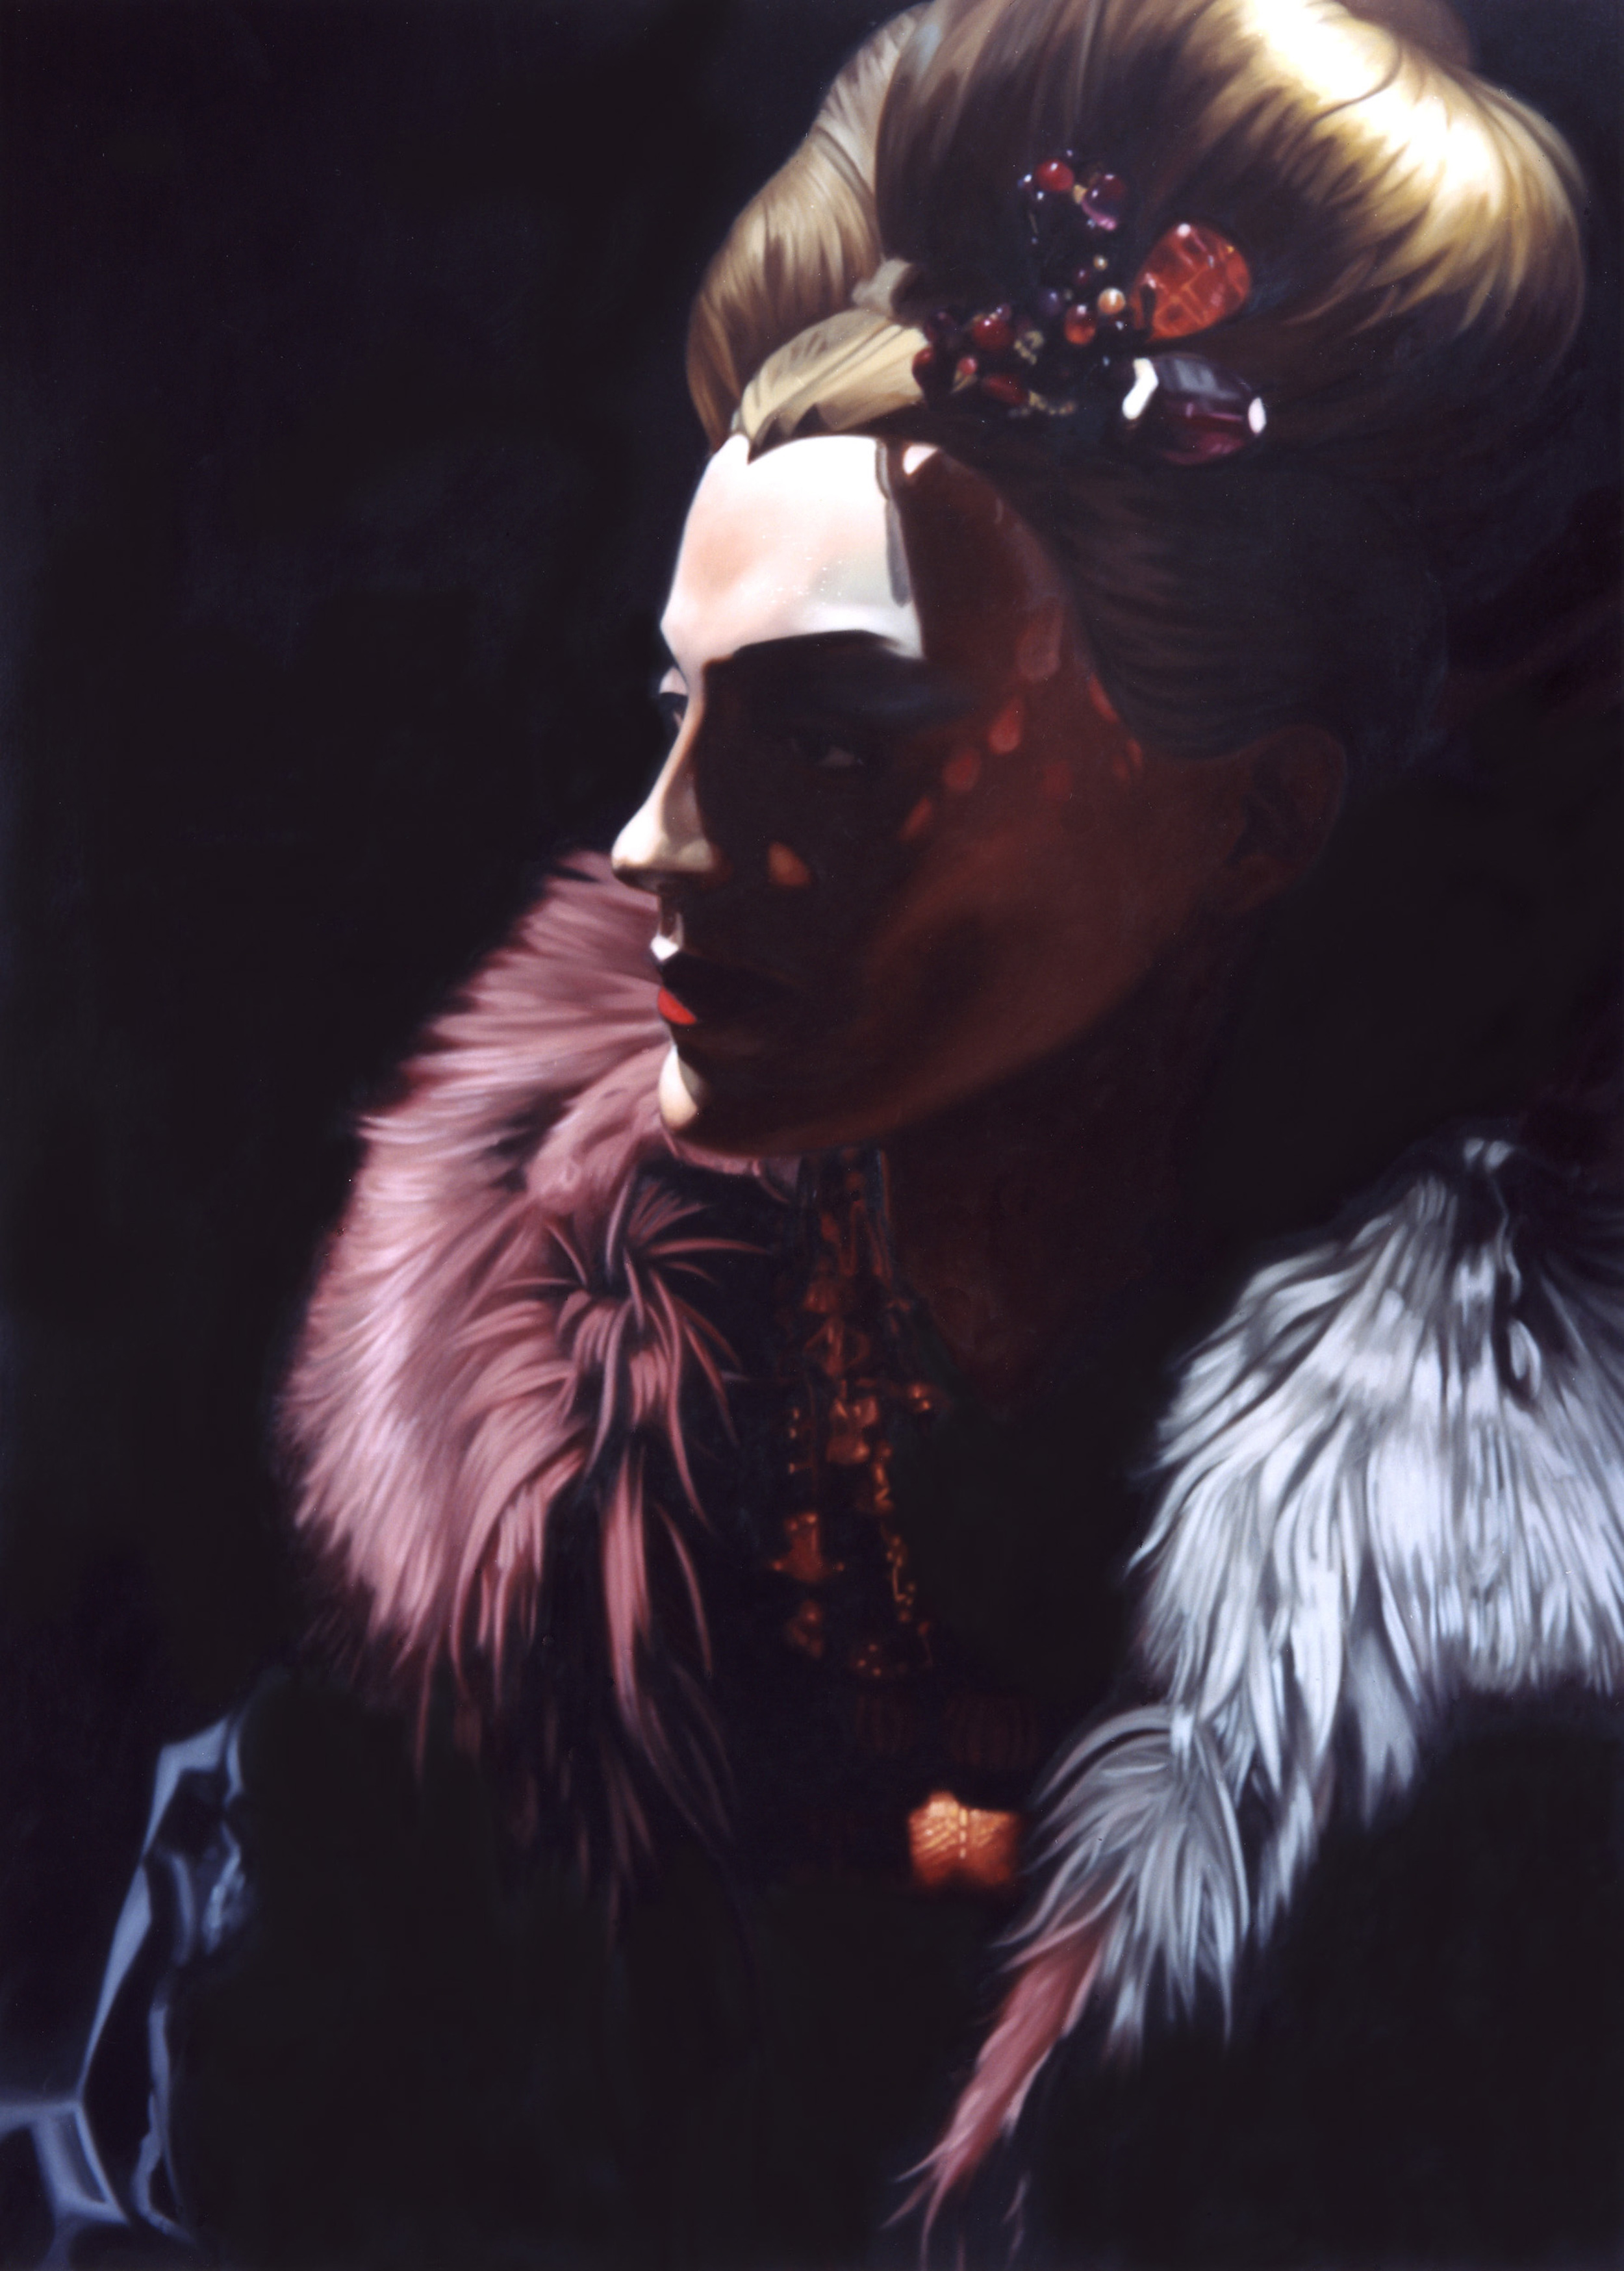 """Esther in """" Fade to Black""""  Oil on Canvas - 50 x 40 in - 2003"""